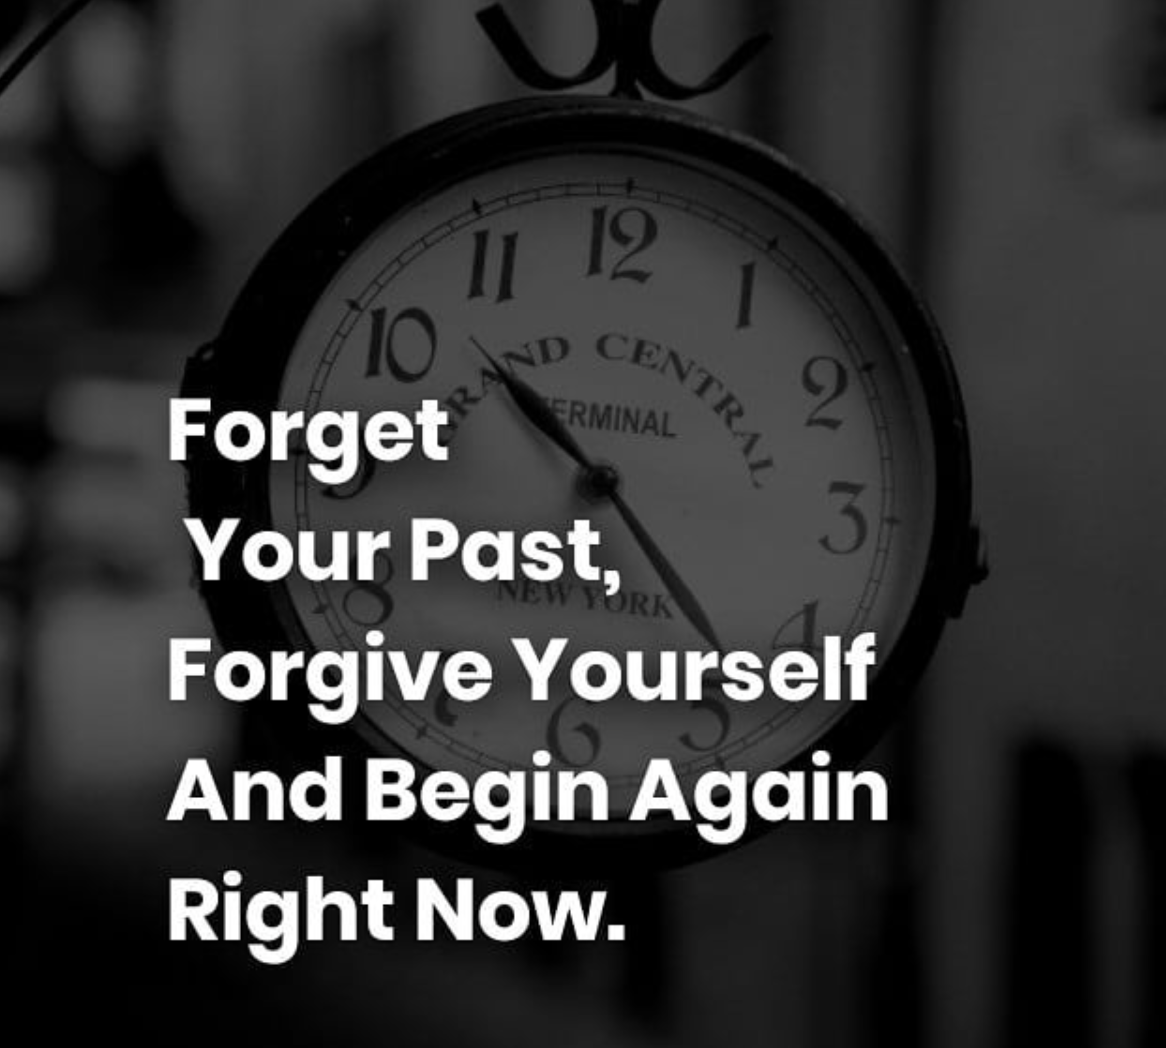 [Image] Forget your past, forgive yourself, and begin again right now.